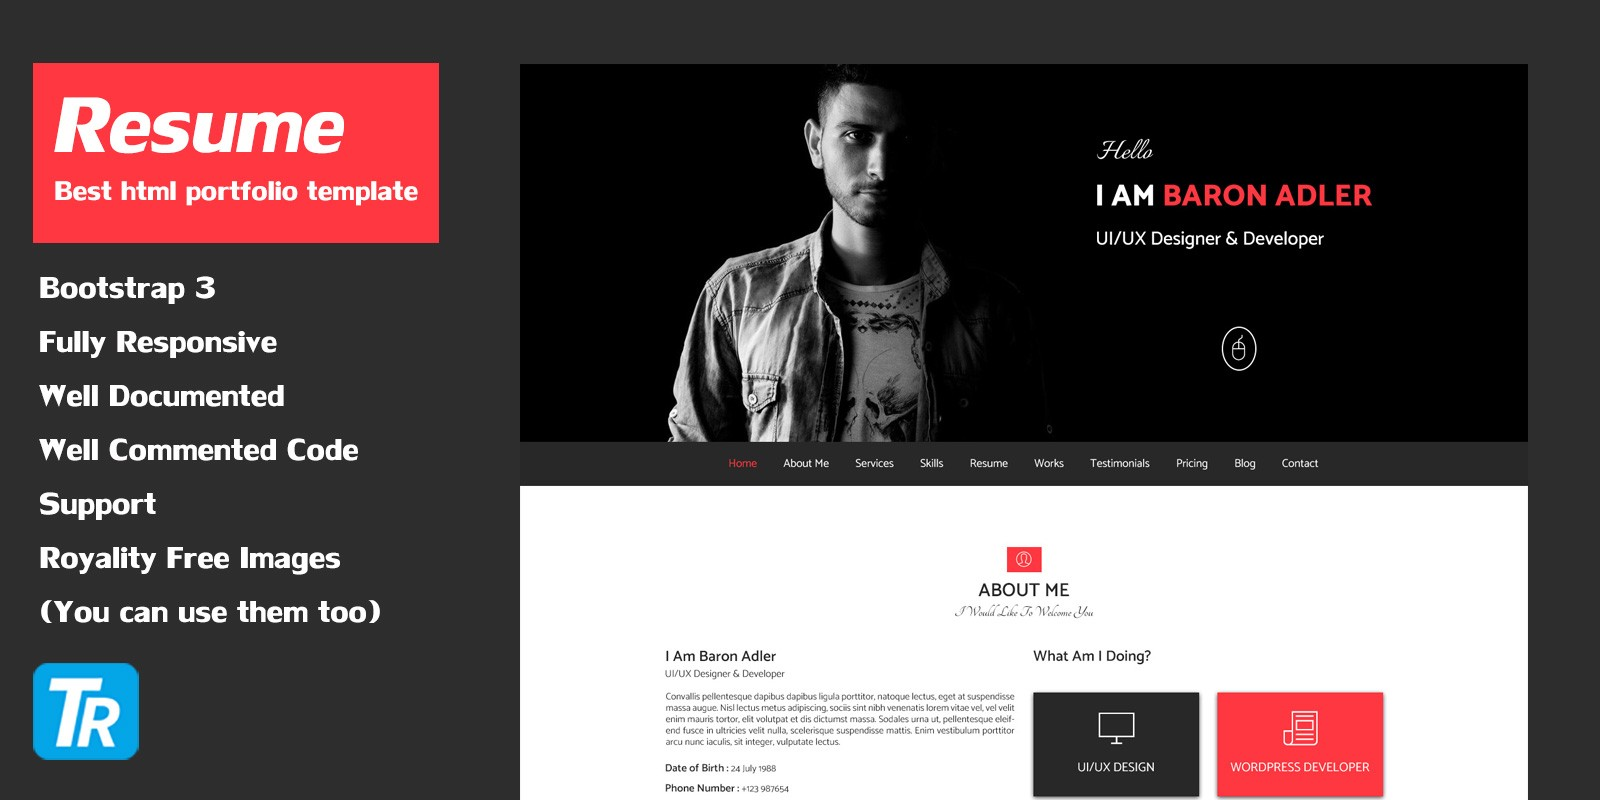 Resume - Personal Portfolio Web Template - HTML Resume Website ...